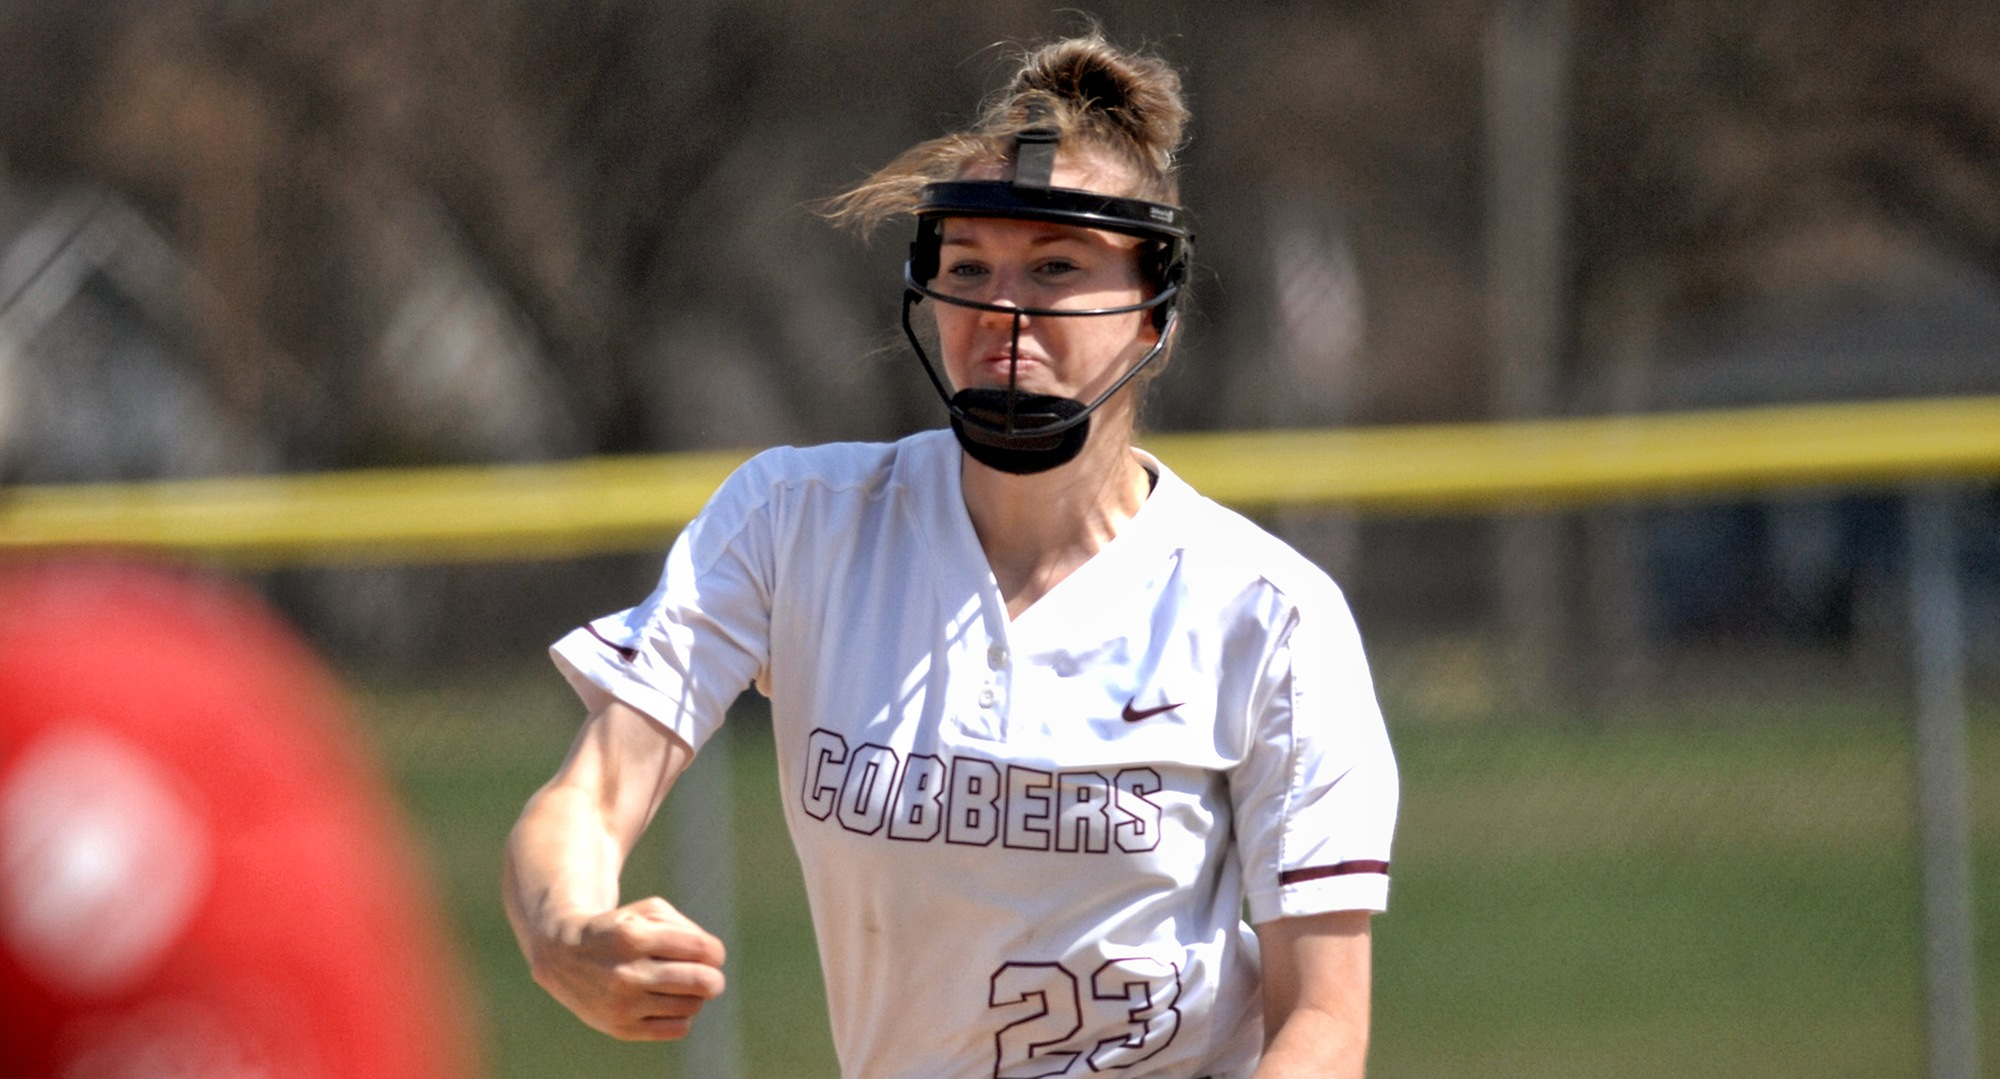 Junior Megan Gavin struck out 11 and only allowed a bloop single in the Cobbers' 4-0 win over Mitchell on Tuesday.